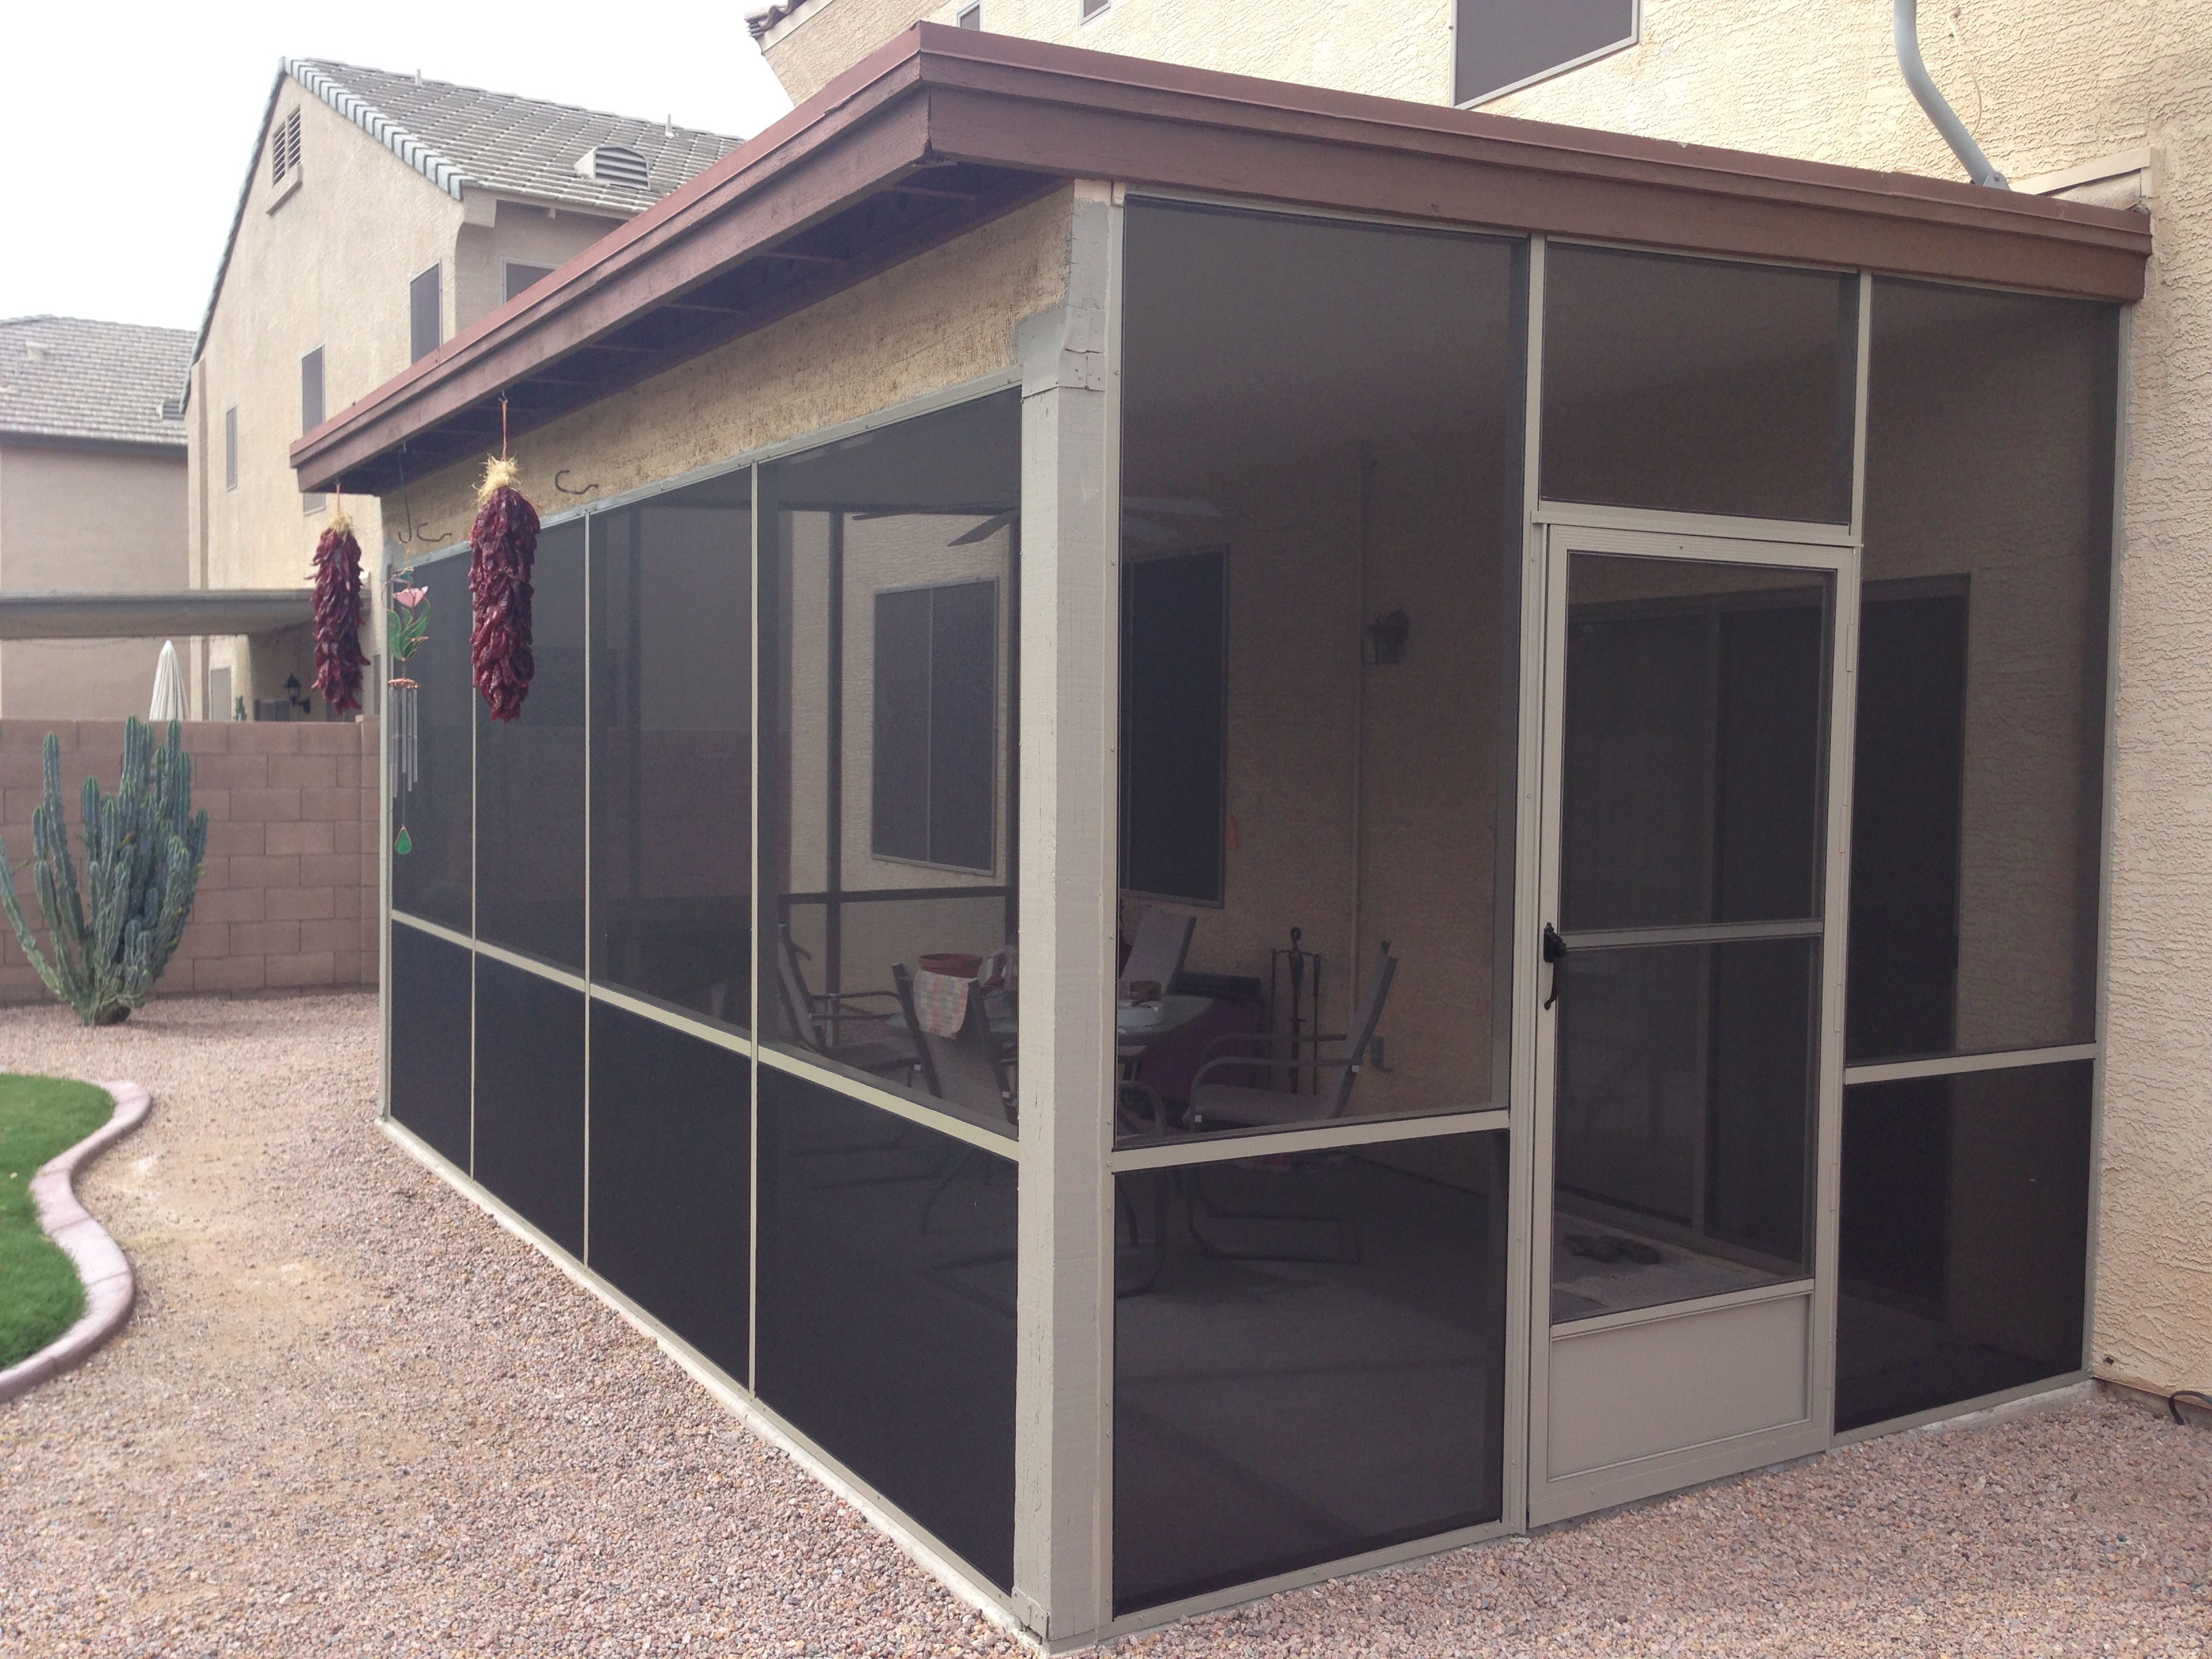 Screened Enclosures in Maricopa, Arizona